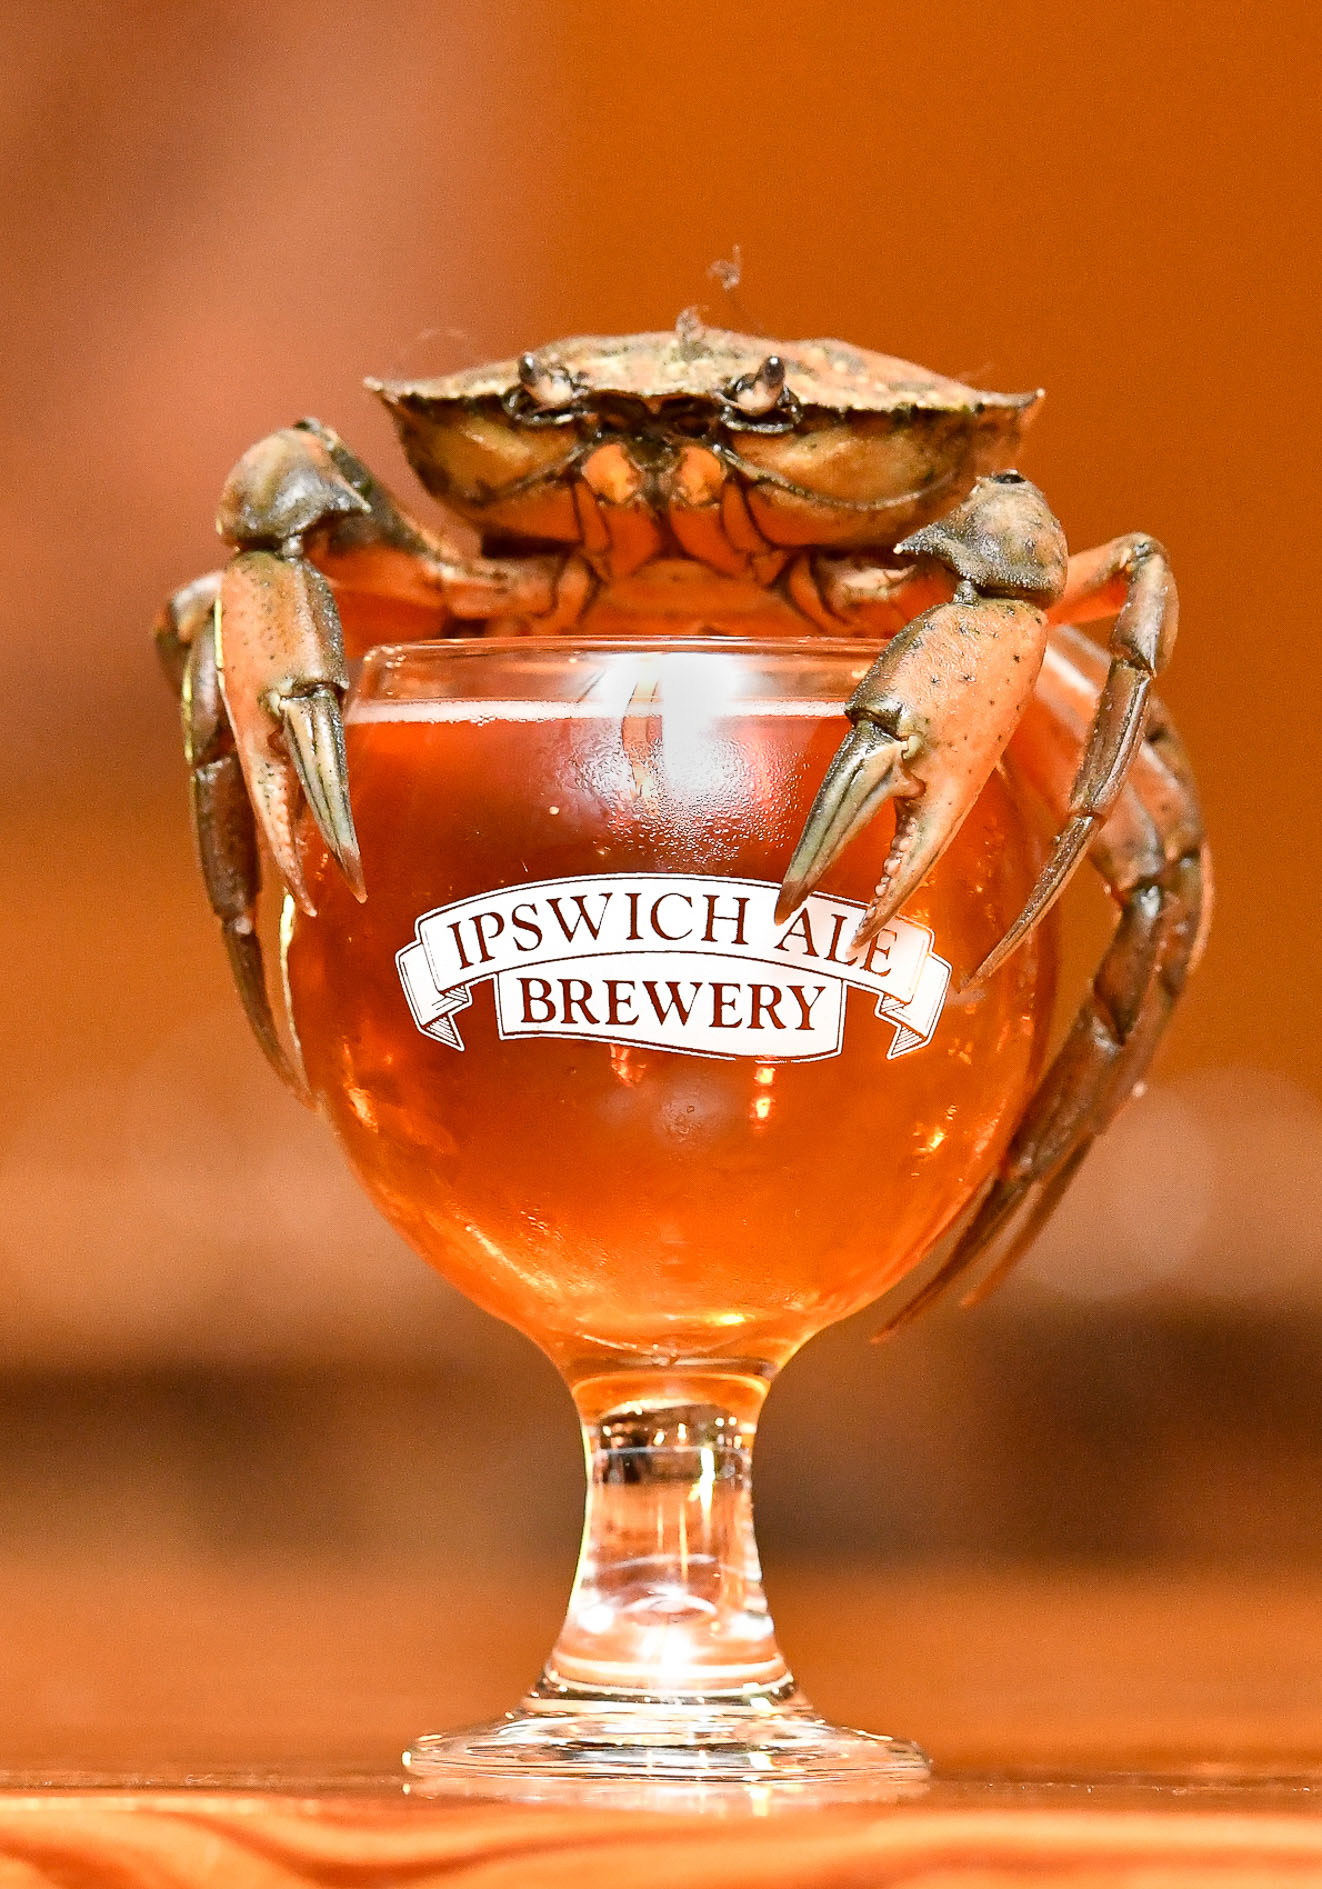 1st Place,Photo Illustration  A green crab rests on the top of a glass of beer inside the Ipswich Ale Brewer's Table to promote Ipswich Cask and Clam week, to be held May 8th-13th, 2017.